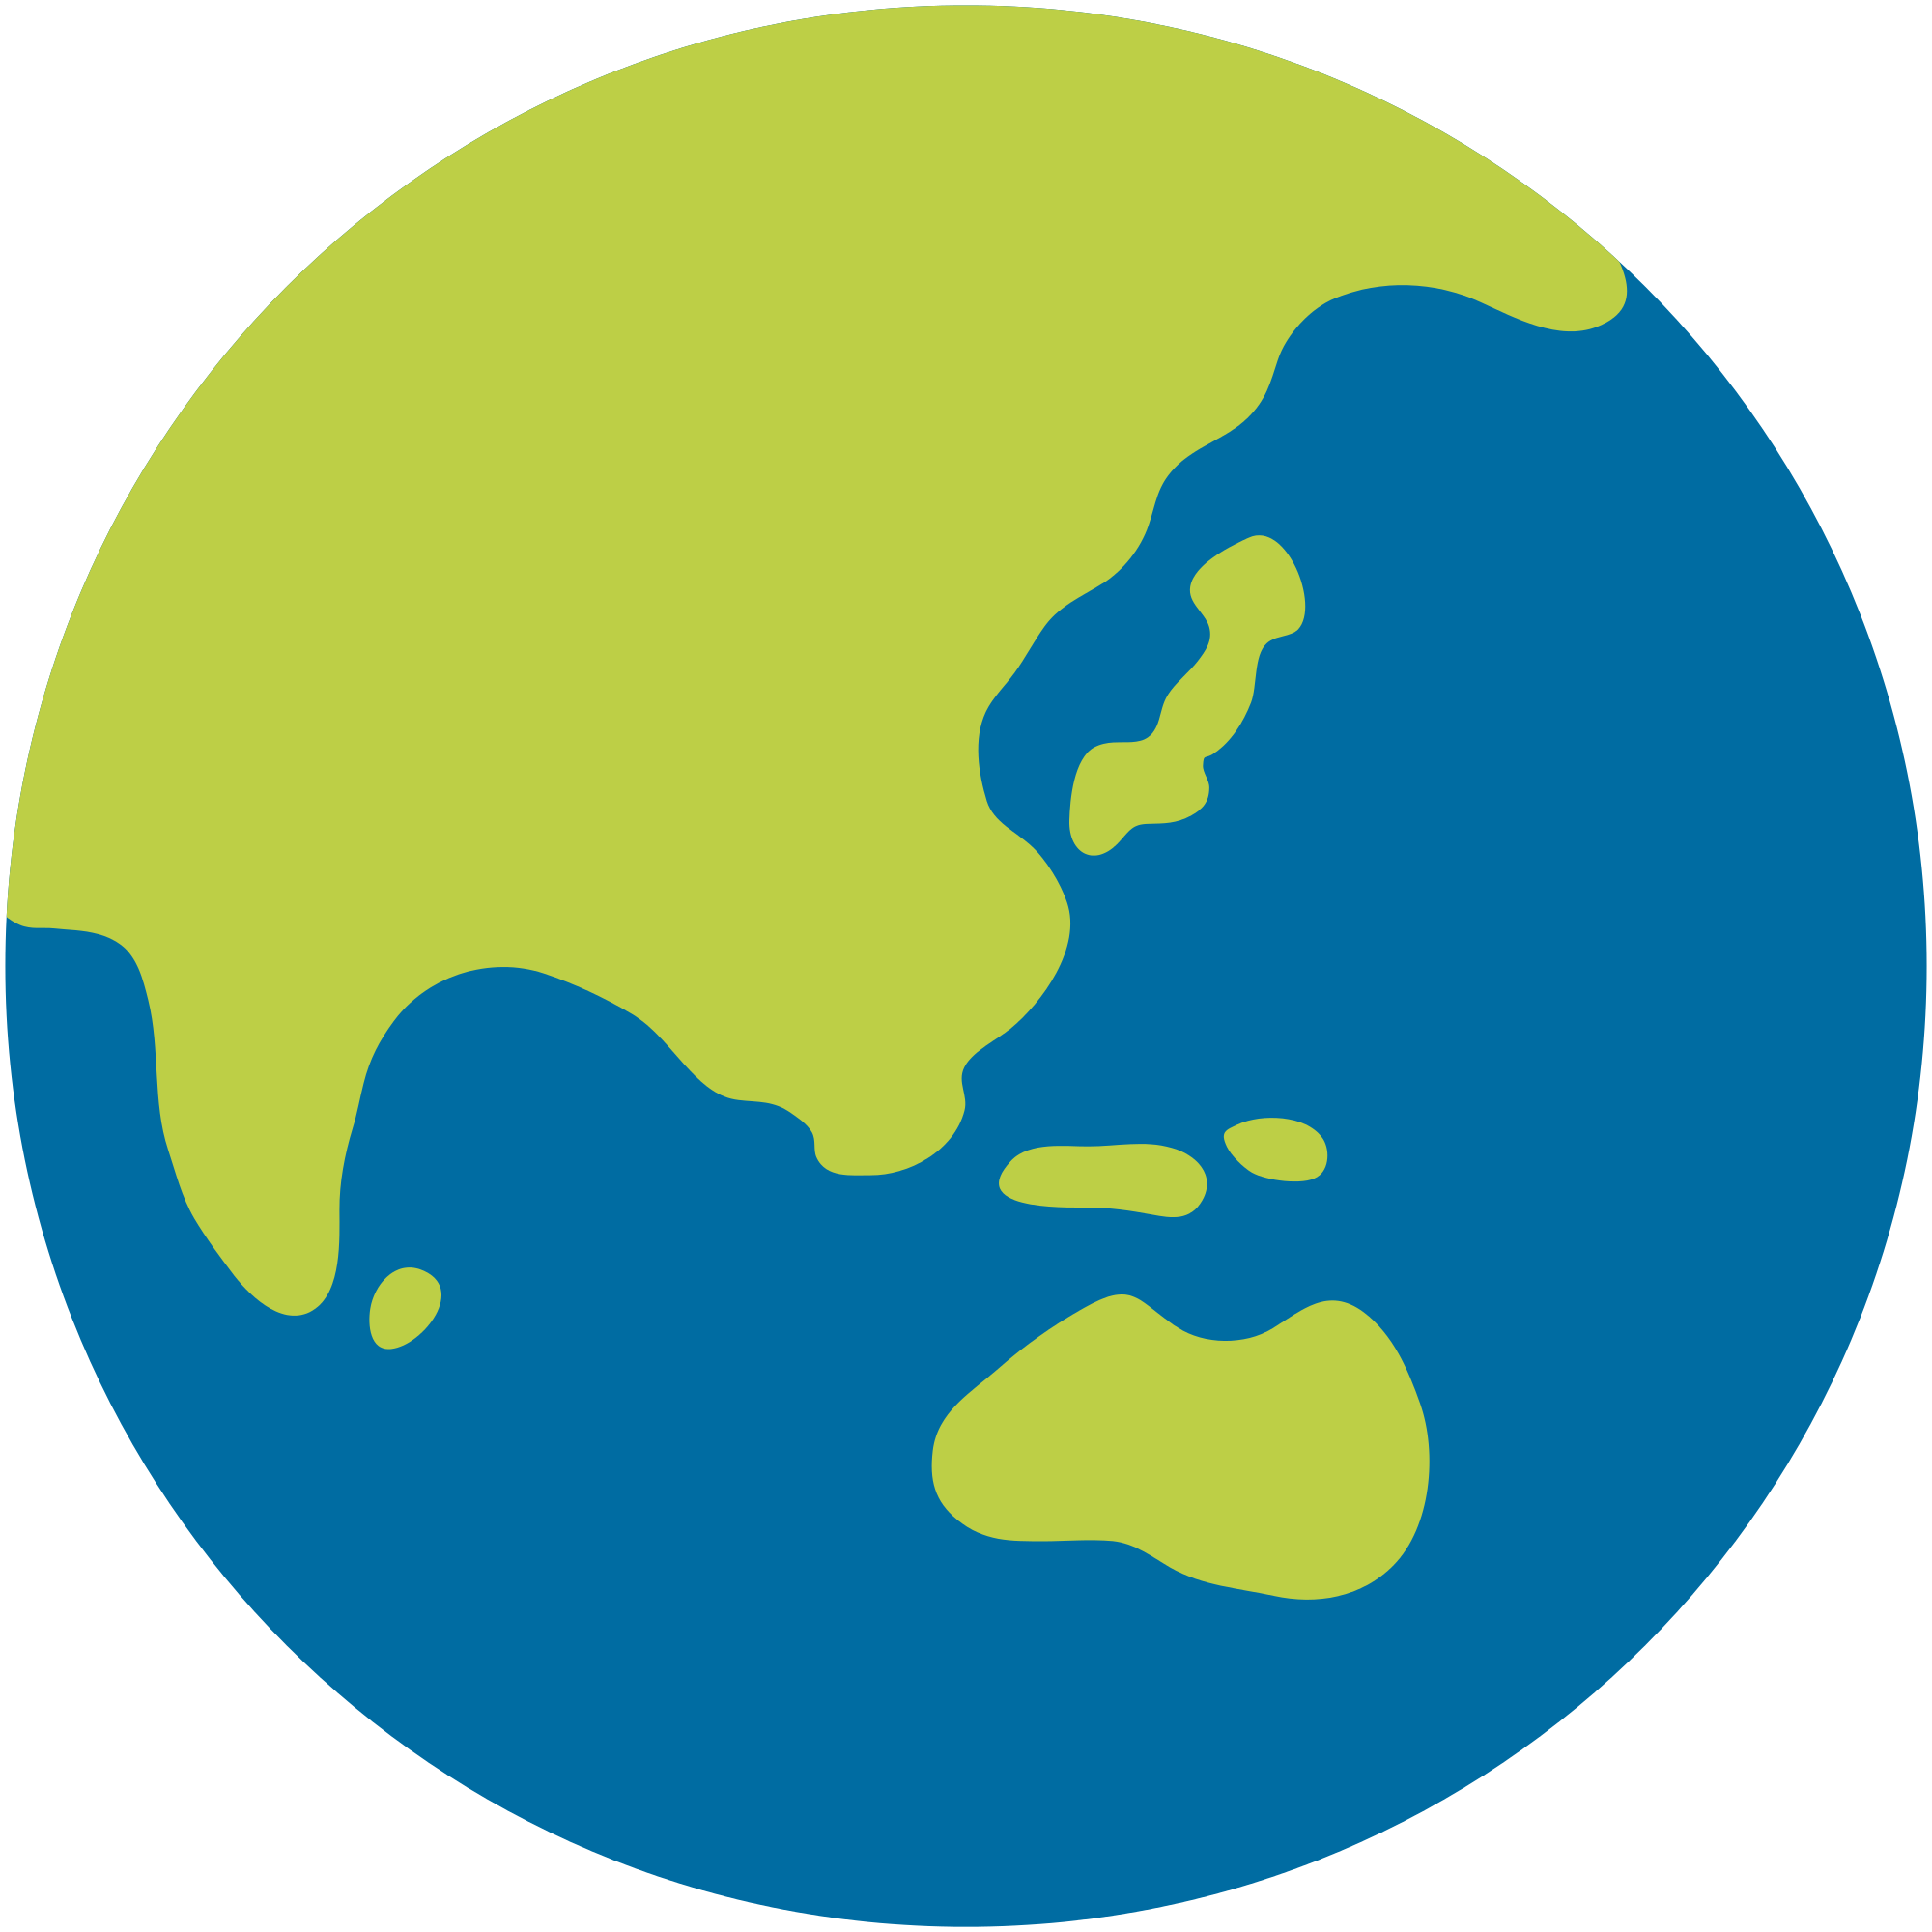 Planet emoji free on. Europe clipart cool earth